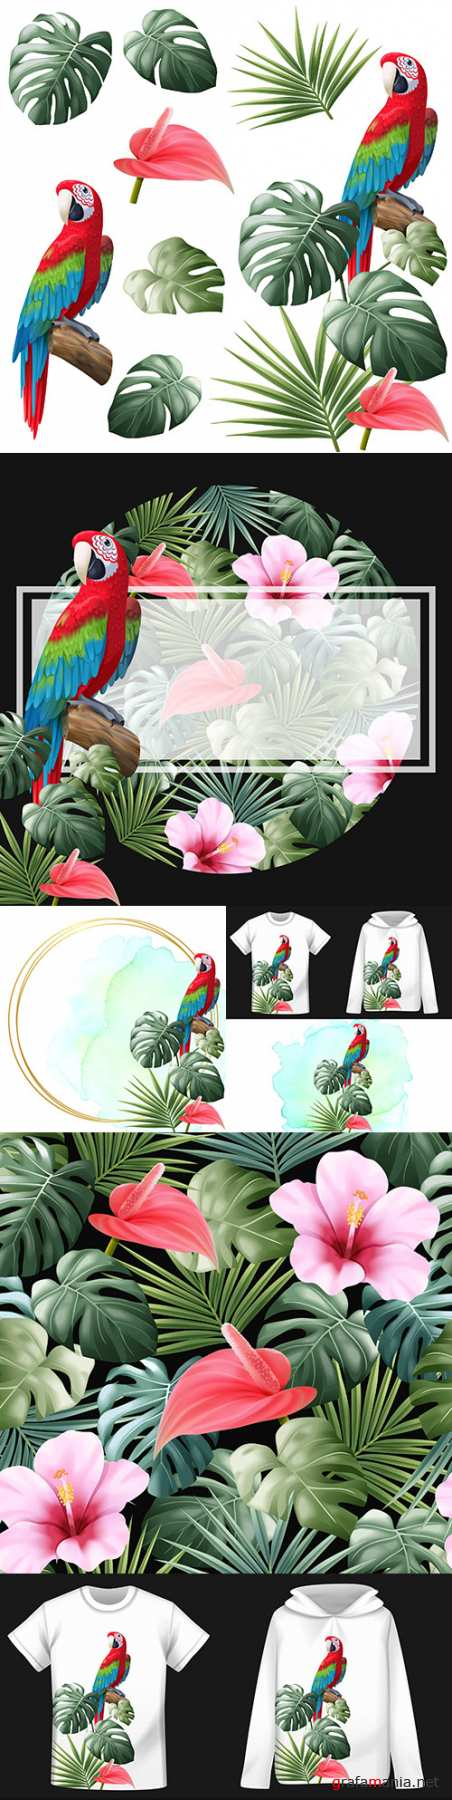 Parrot, leaf monsters and palm trees with colors realistic illustrations